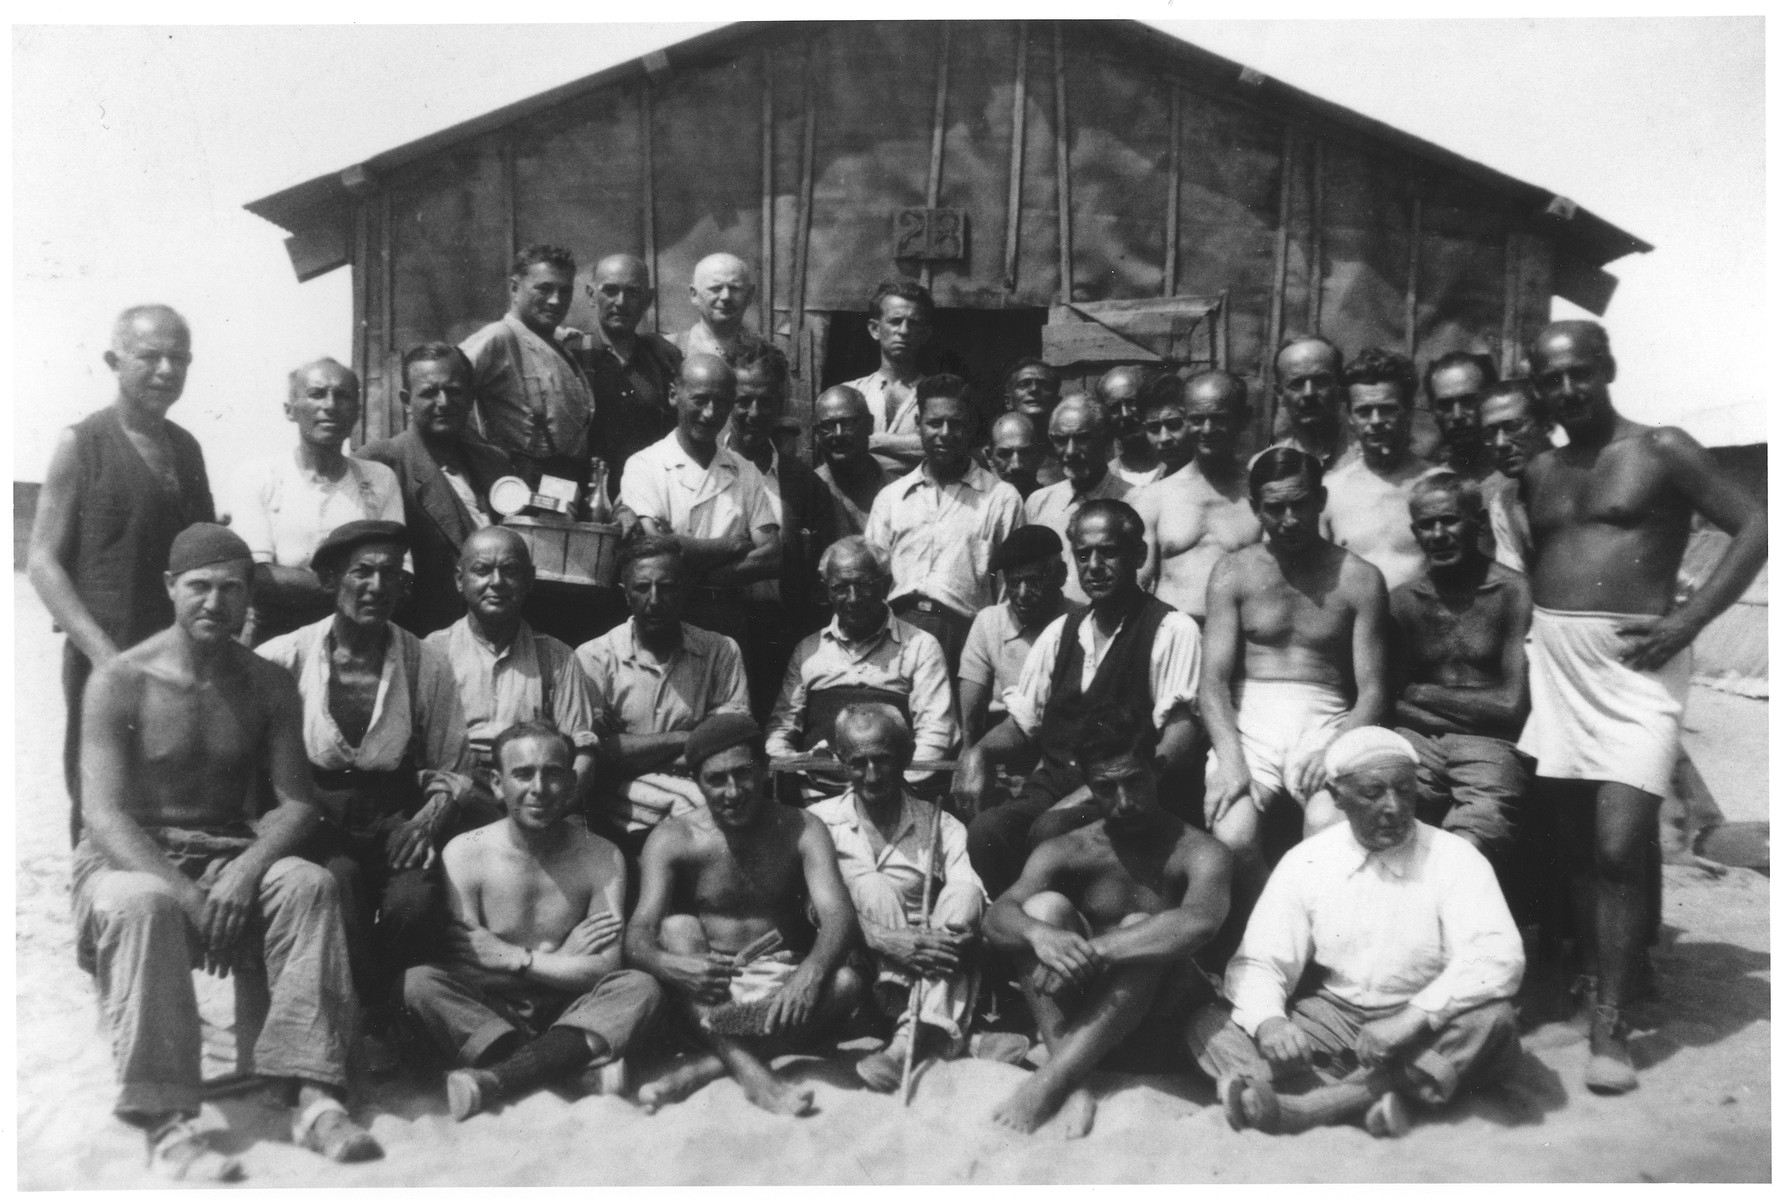 A group of male prisoners poses outside barrack no. 28 in the Saint Cyprien internment camp.  The man in the top row, second from the right is Moritz Adler.